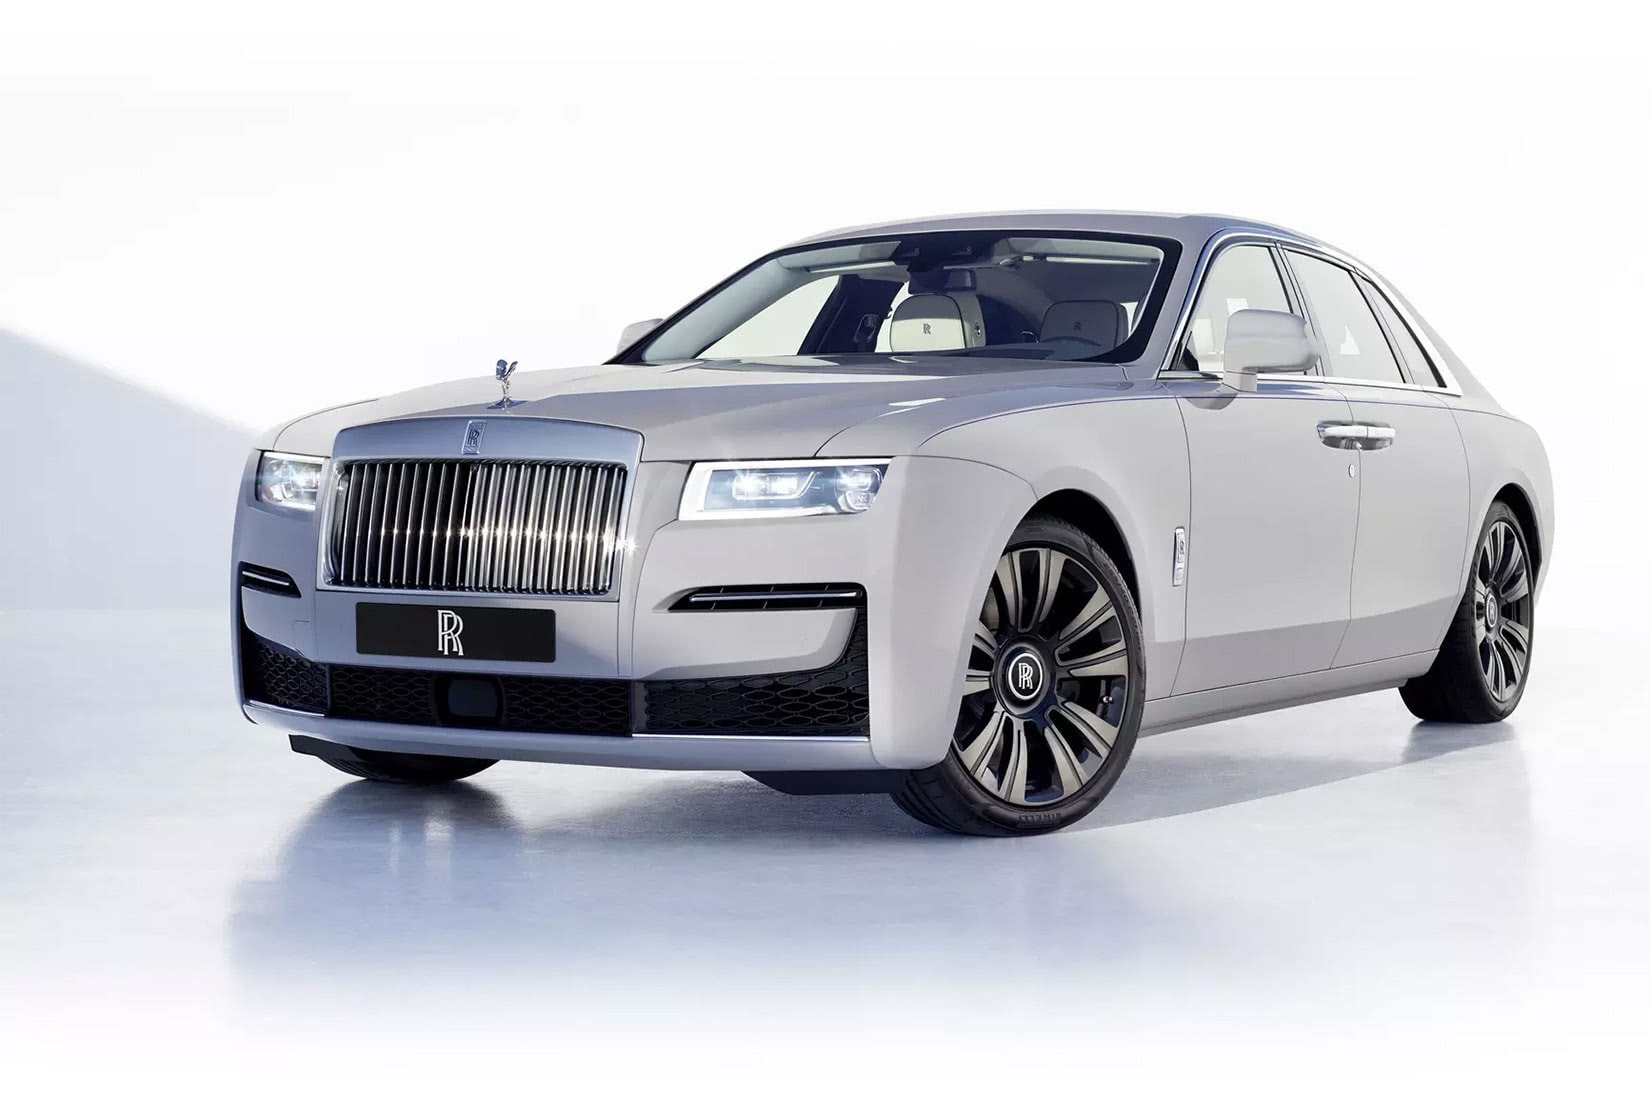 most expensive cars 2021 Rolls Royce Ghost - Luxe Digital